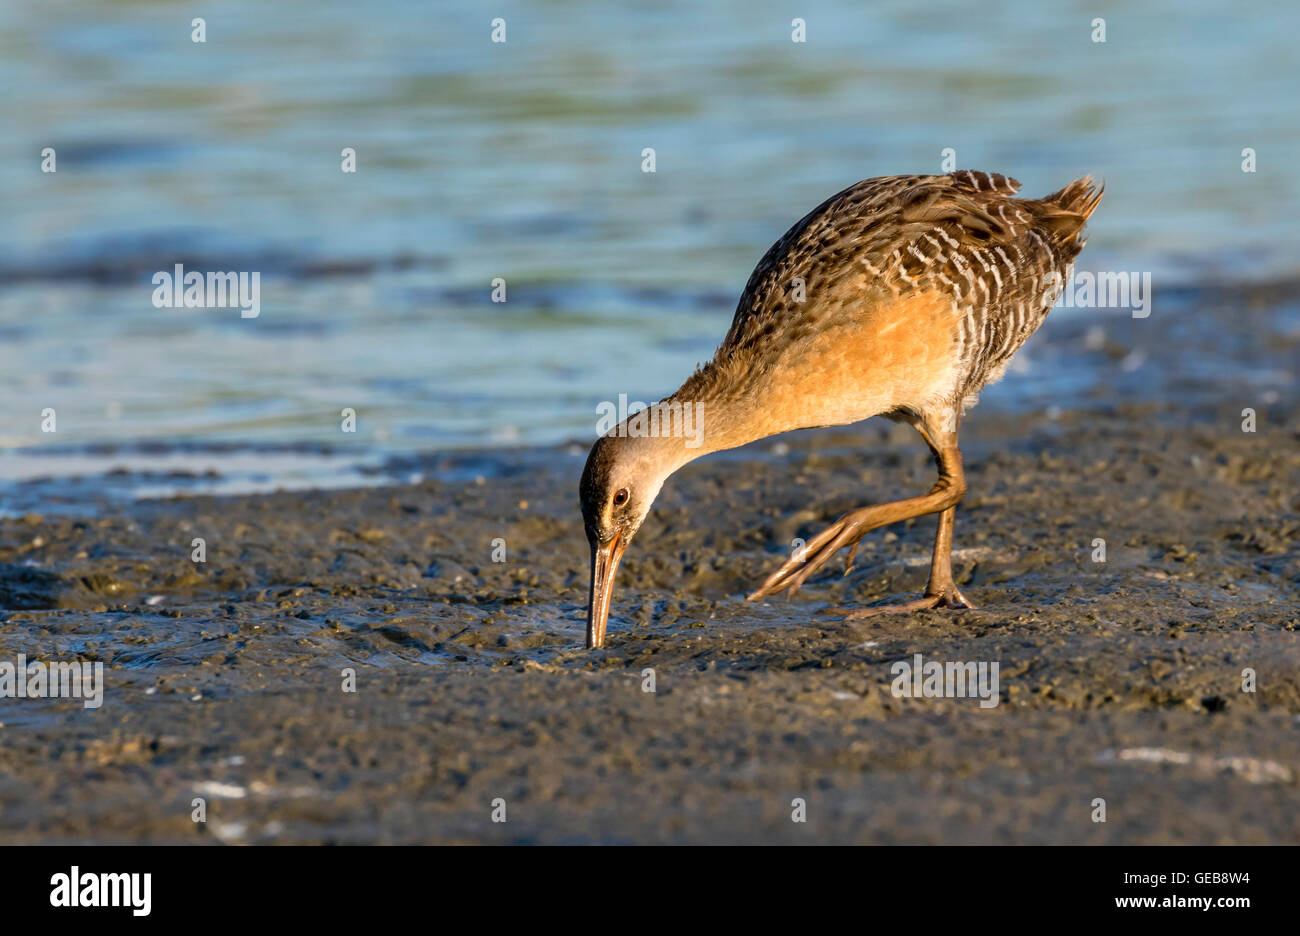 Clapper rail (Rallus crepitans) looking for food at the muddy edge of tidal marsh, Galveston, Texas, USA. - Stock Image